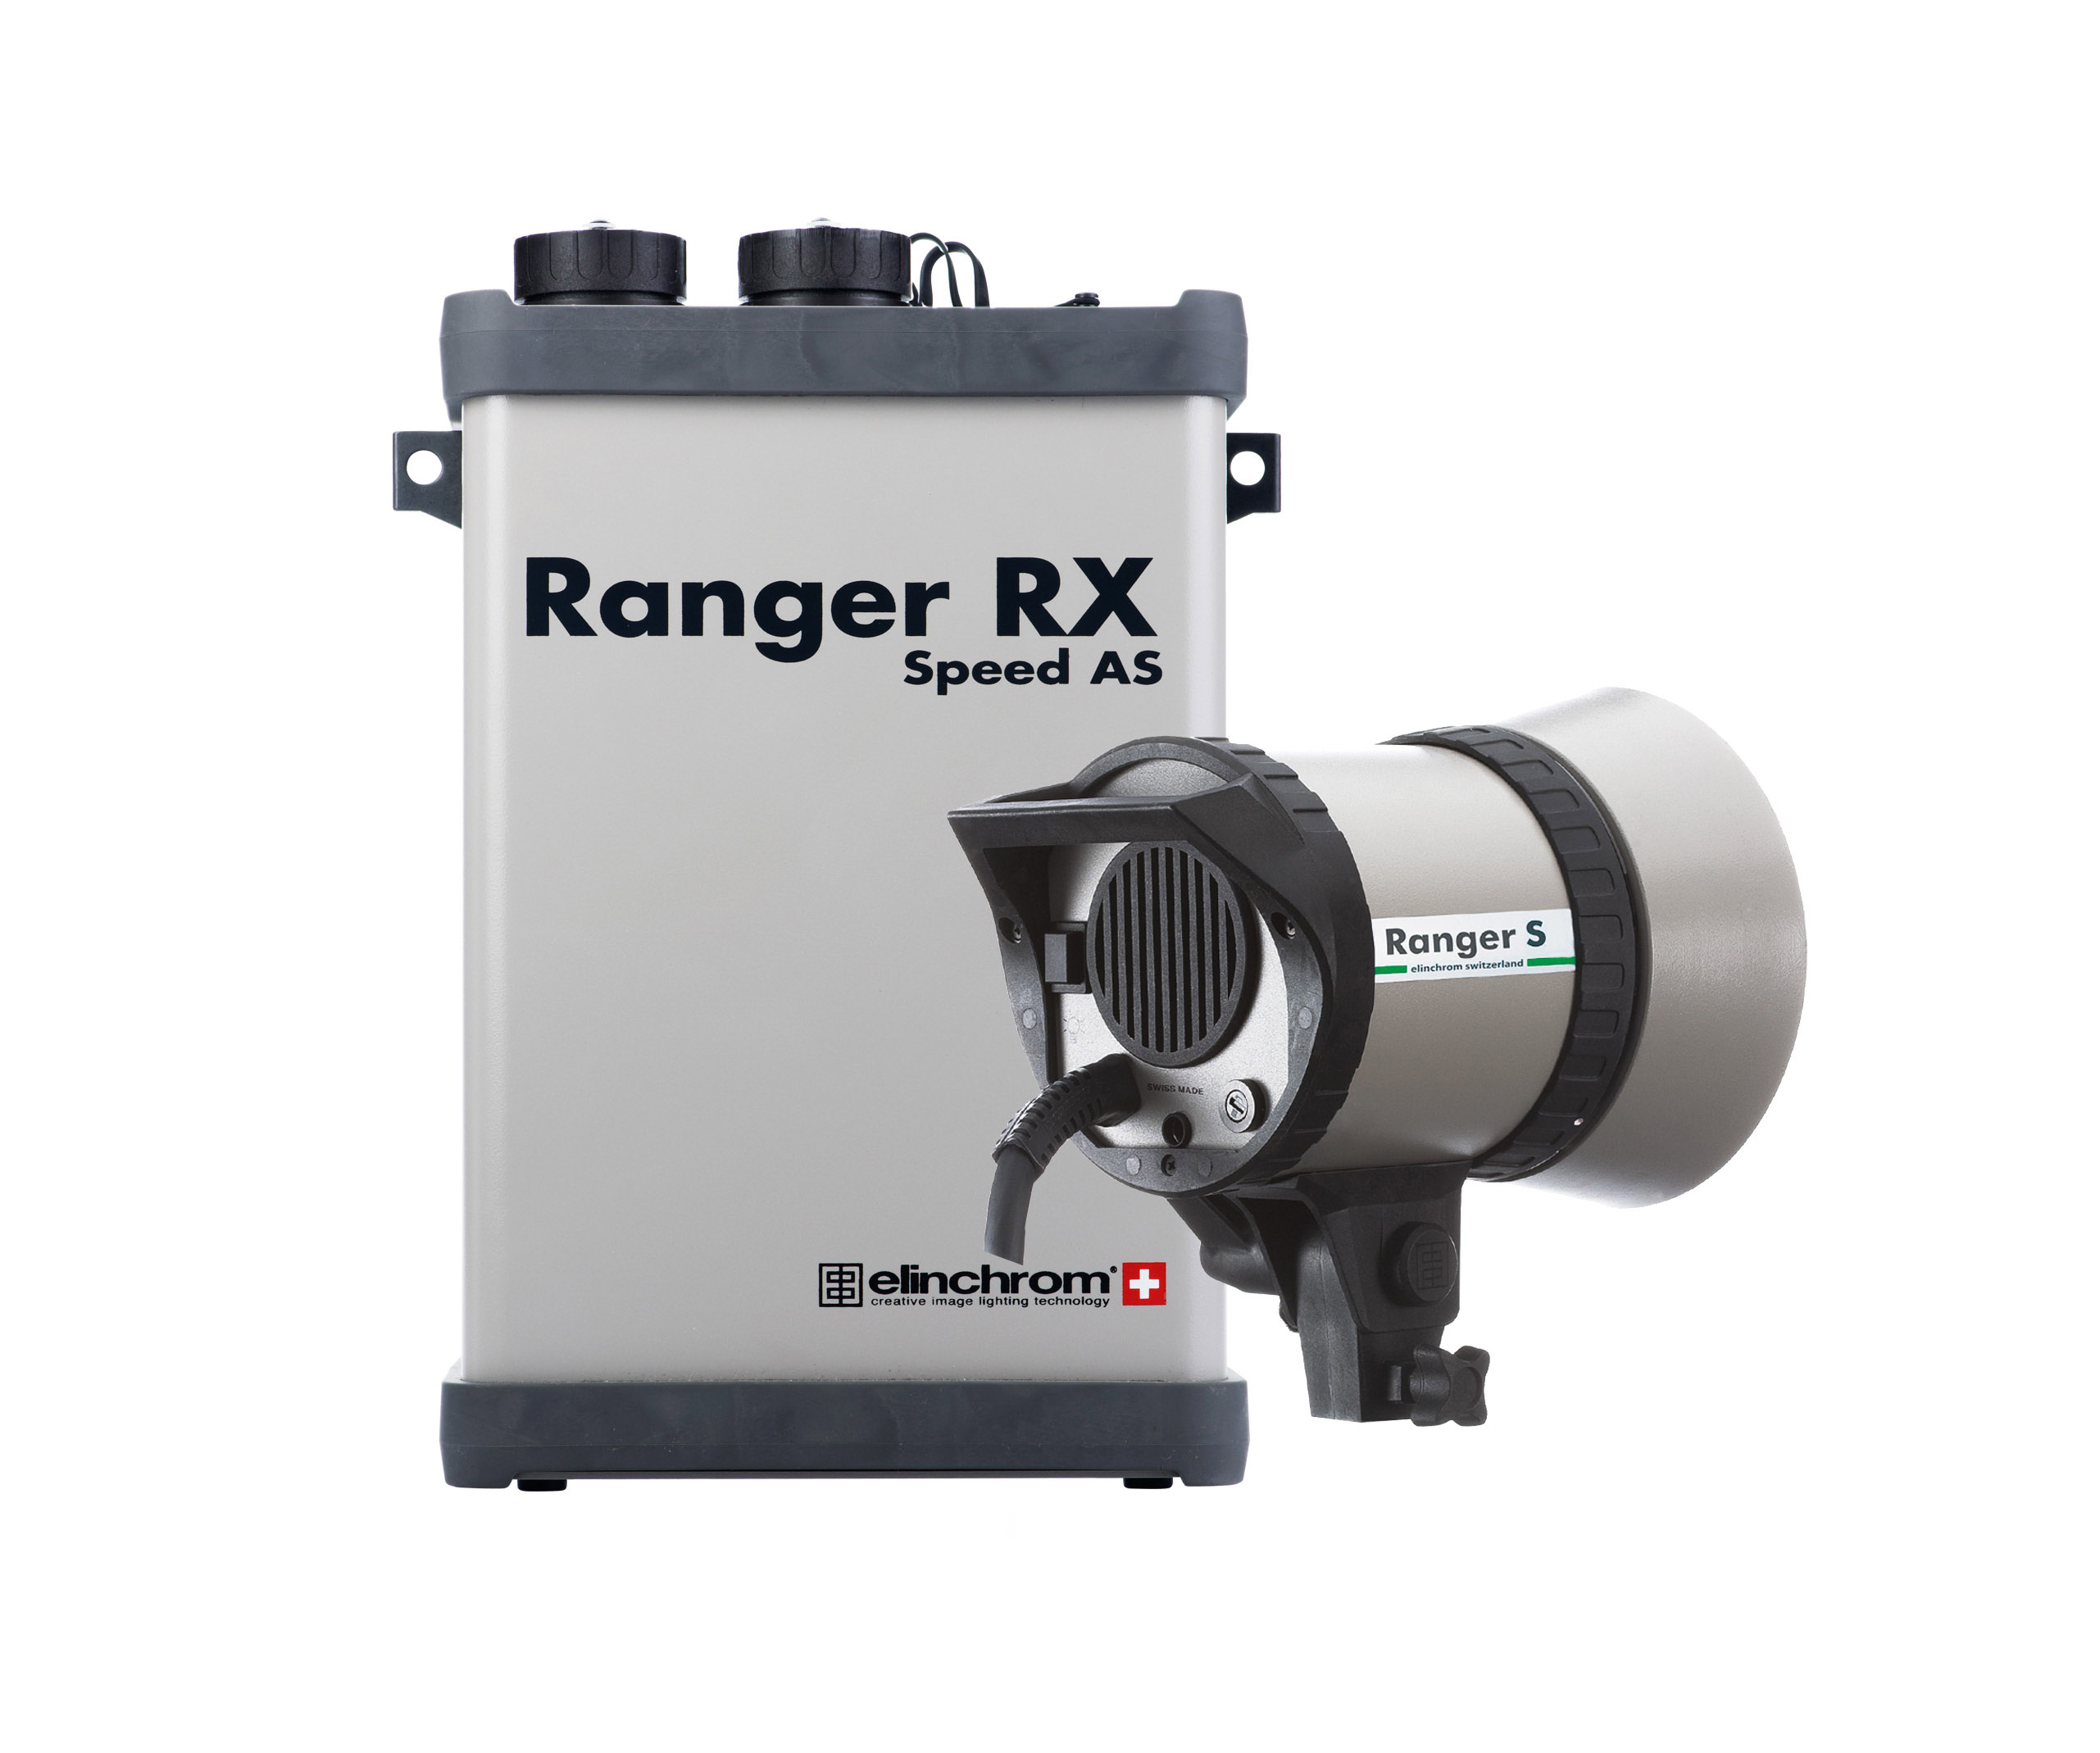 Elinchrom Ranger RX Speed AS Starter-Set